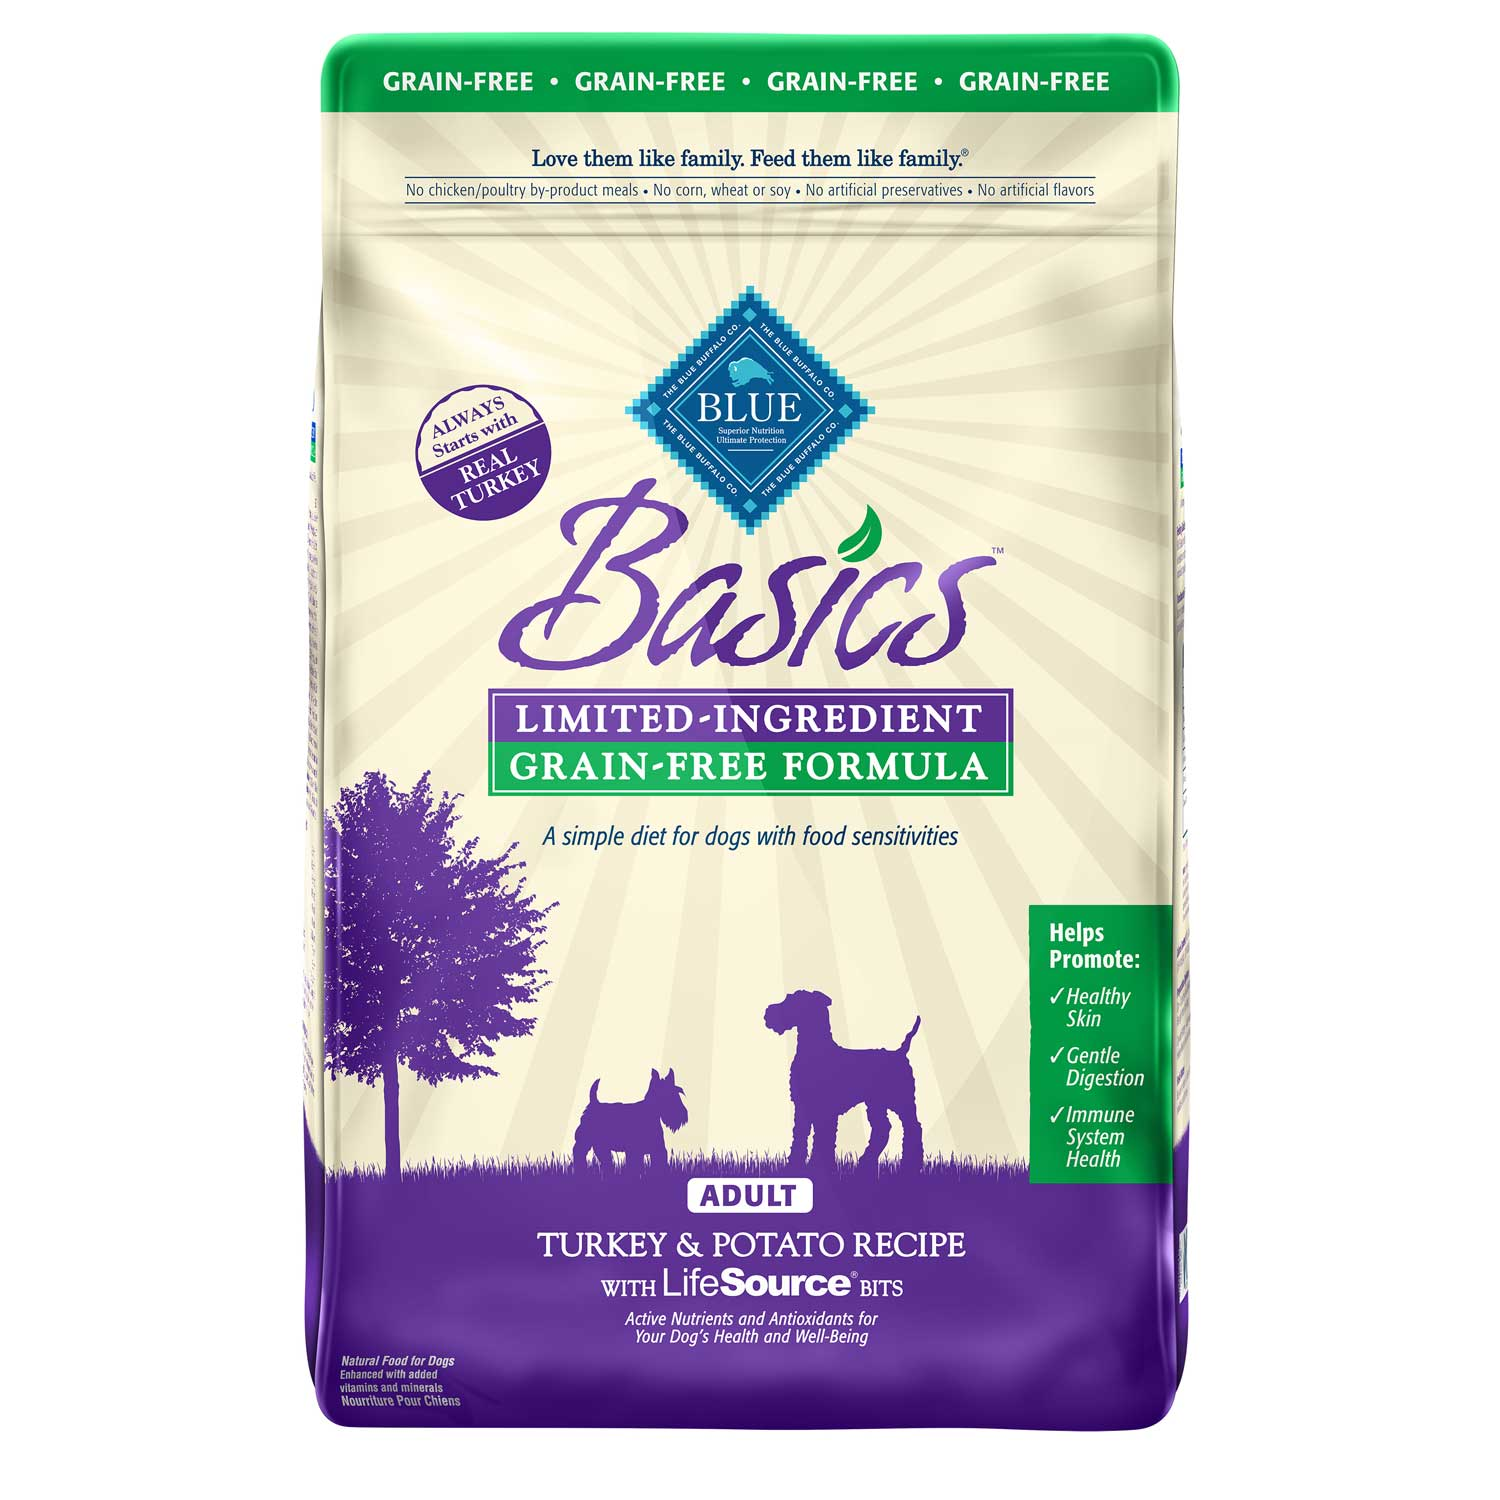 Blue Buffalo Basics Limited Ingredient Grain-Free Formula Turkey & Potato Recipe Adult Dry Dog Food 24lbs